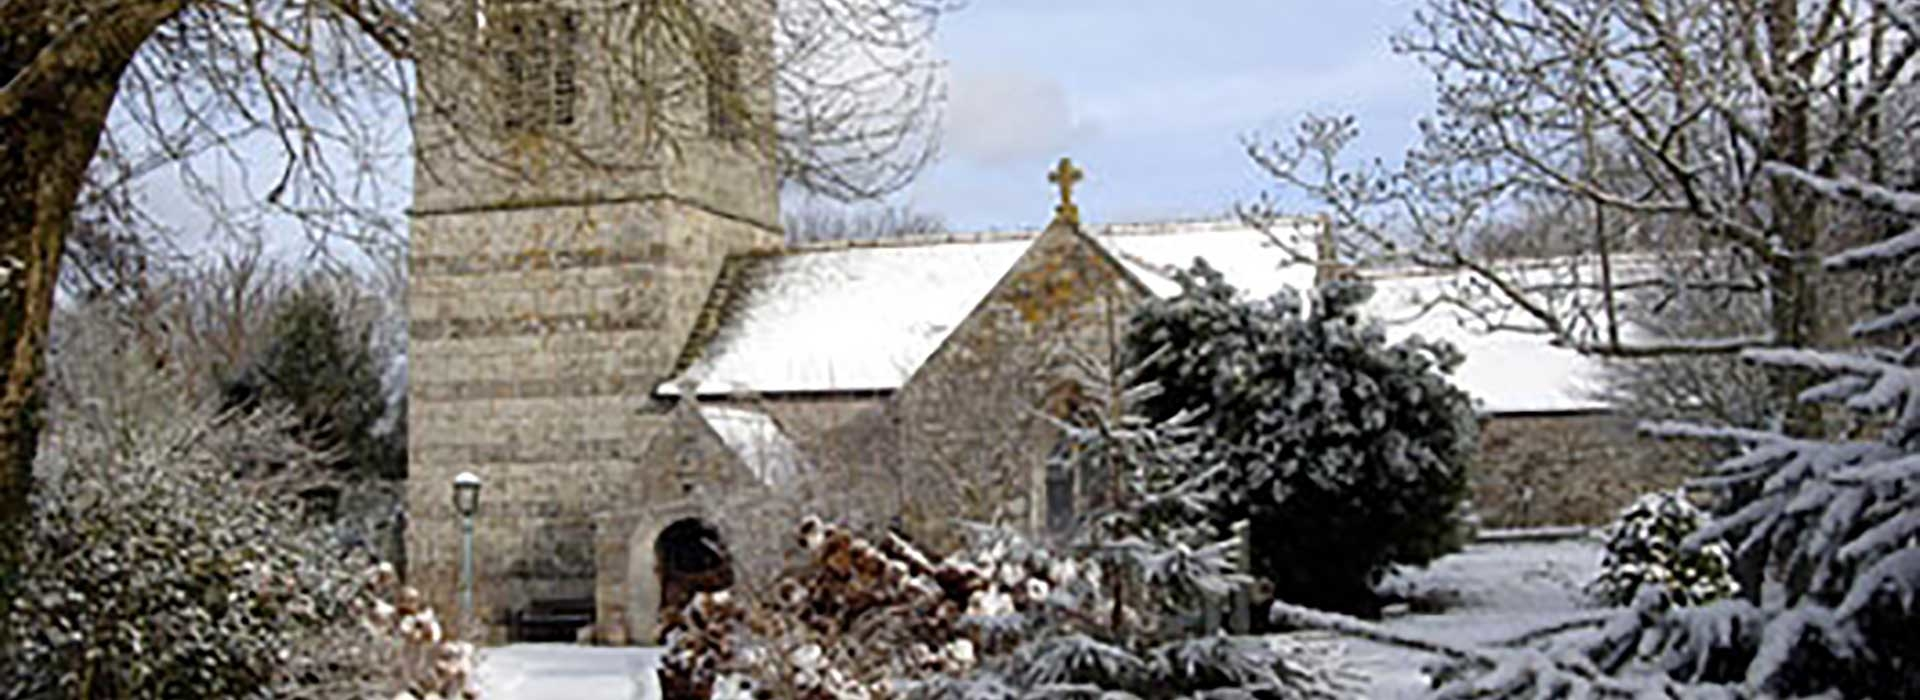 Spreading warmth with efficient church heating solution